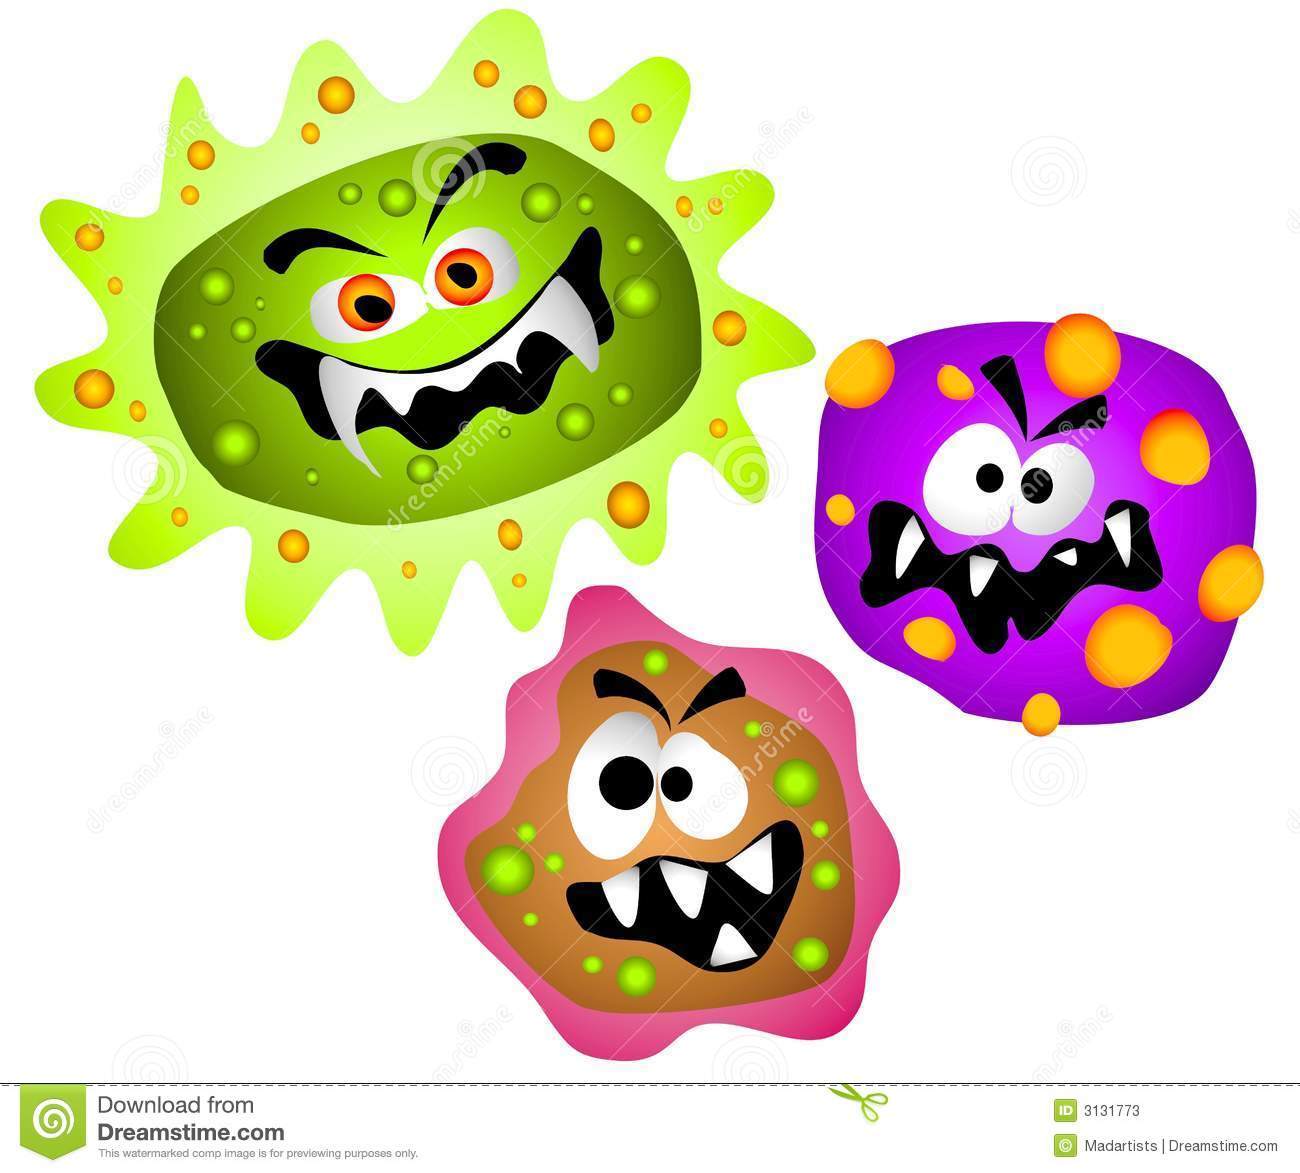 Germs Viruses Bacteria Clipart Stock Pho-Germs Viruses Bacteria Clipart Stock Photos Image 3131773-1